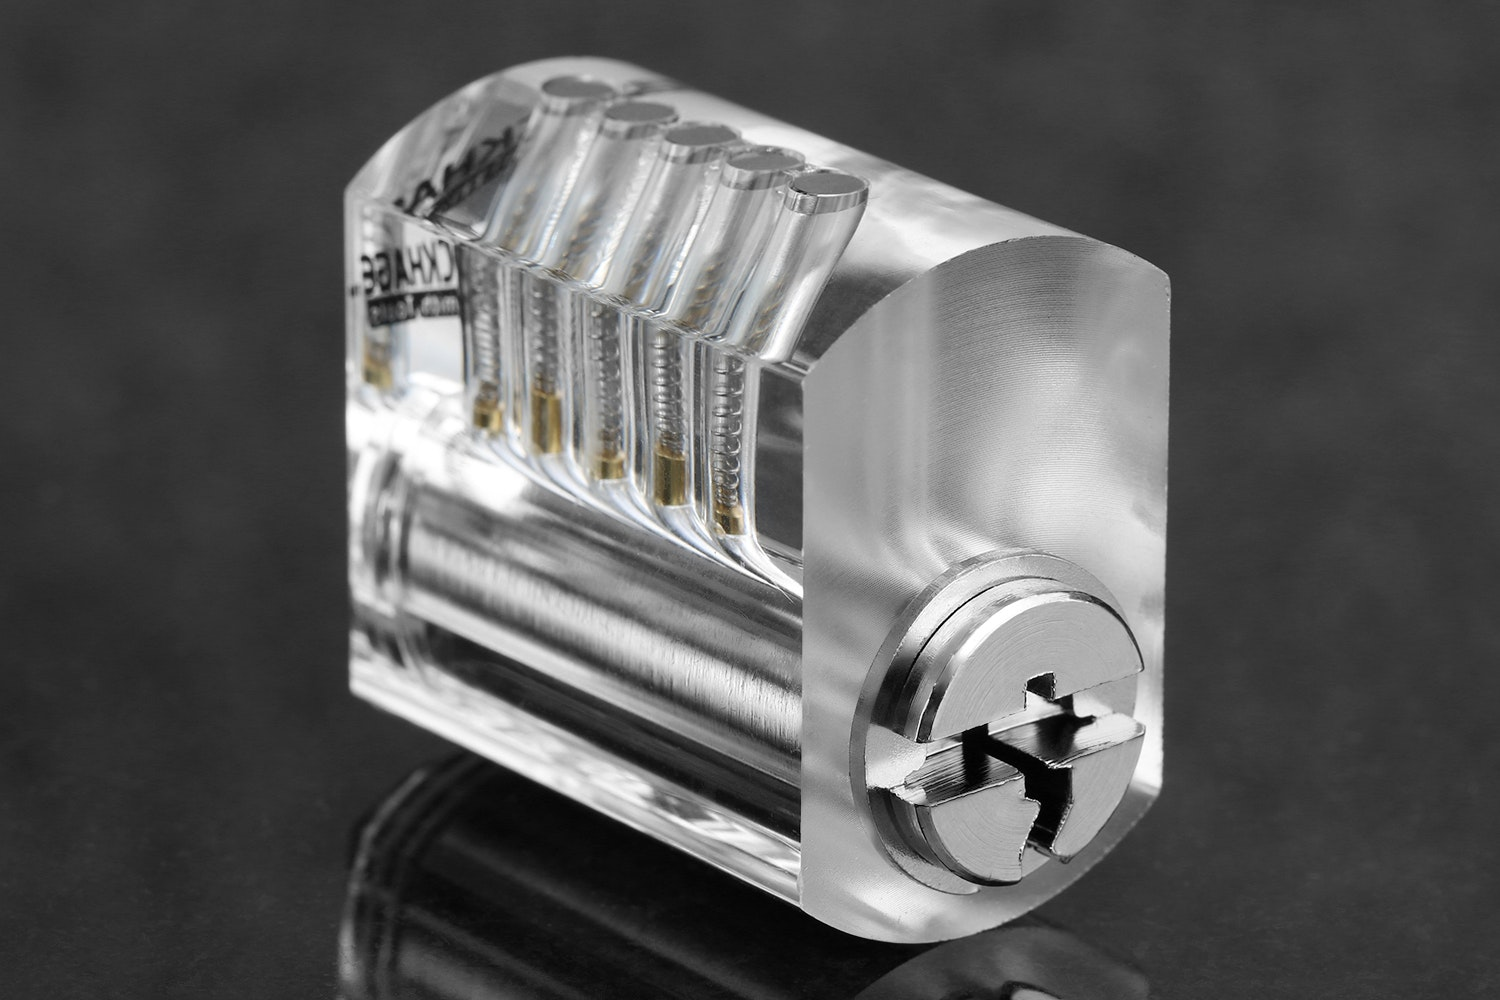 Brockhage Clear Practice Lock